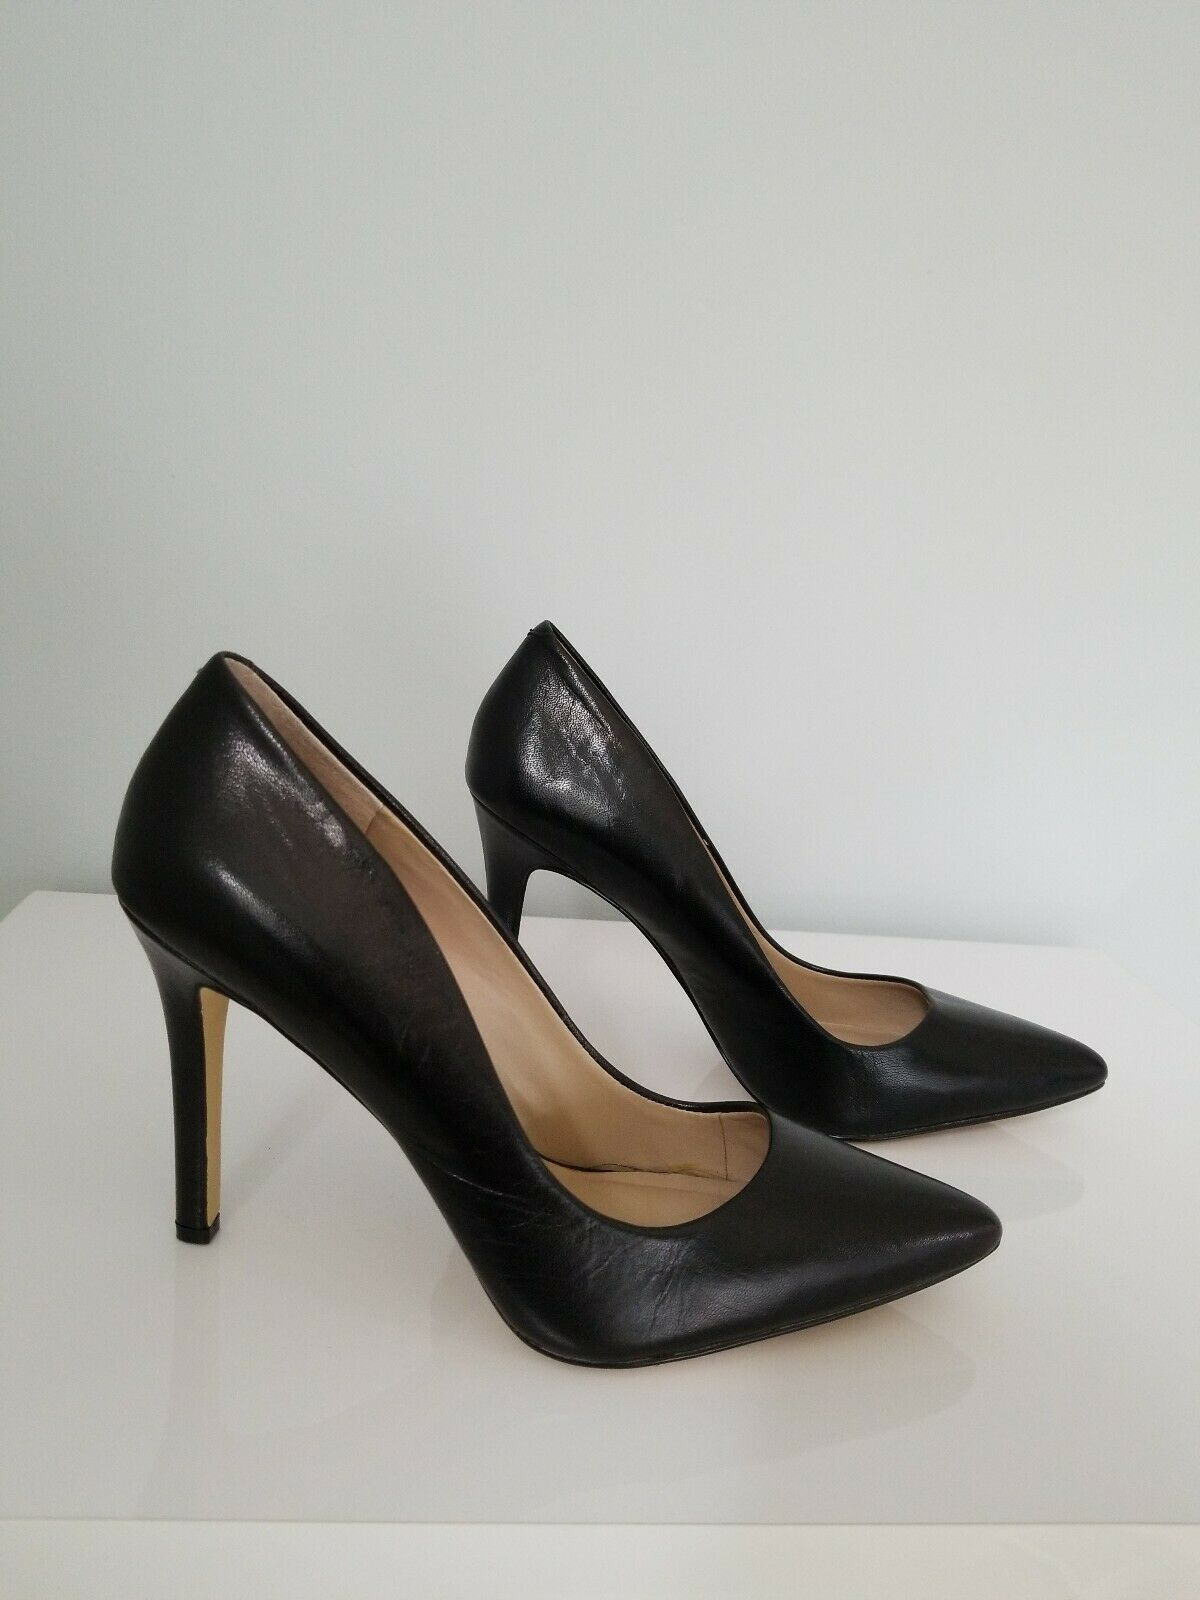 Womens black Stiletto Heel  leather pointed toe pumps size 9 Saks fifth avenue